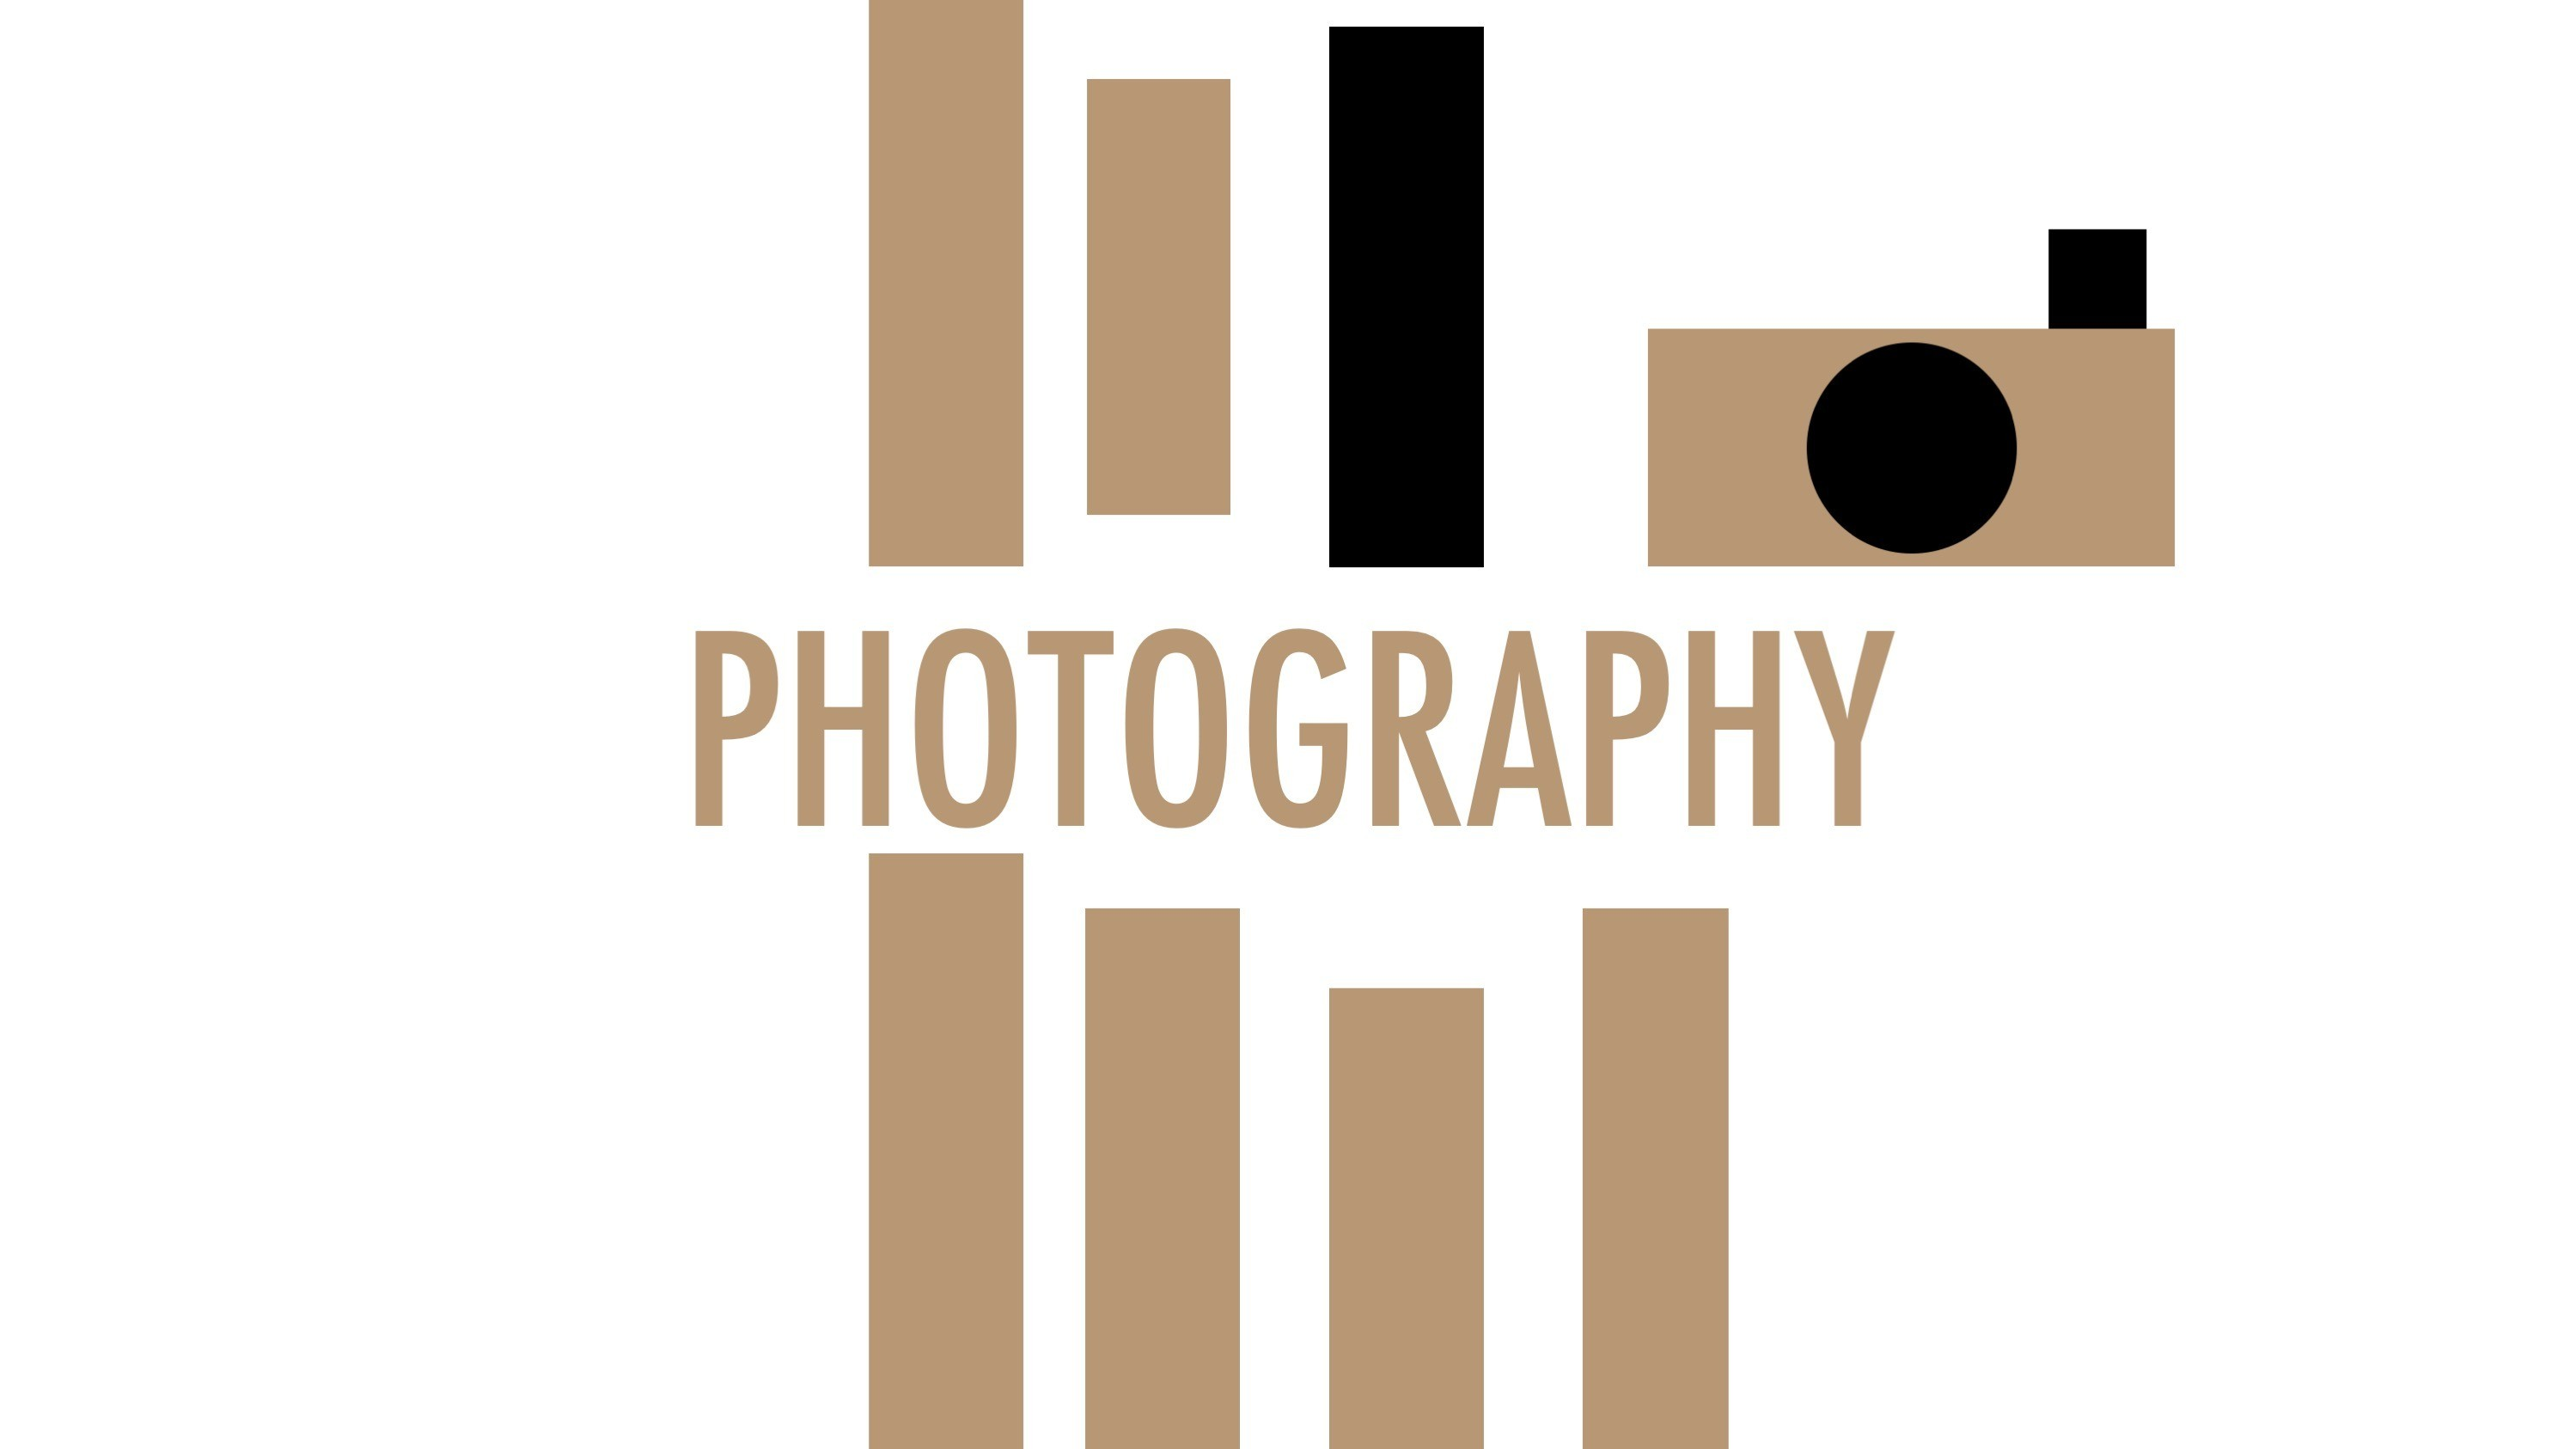 Photography-category-hover-icon